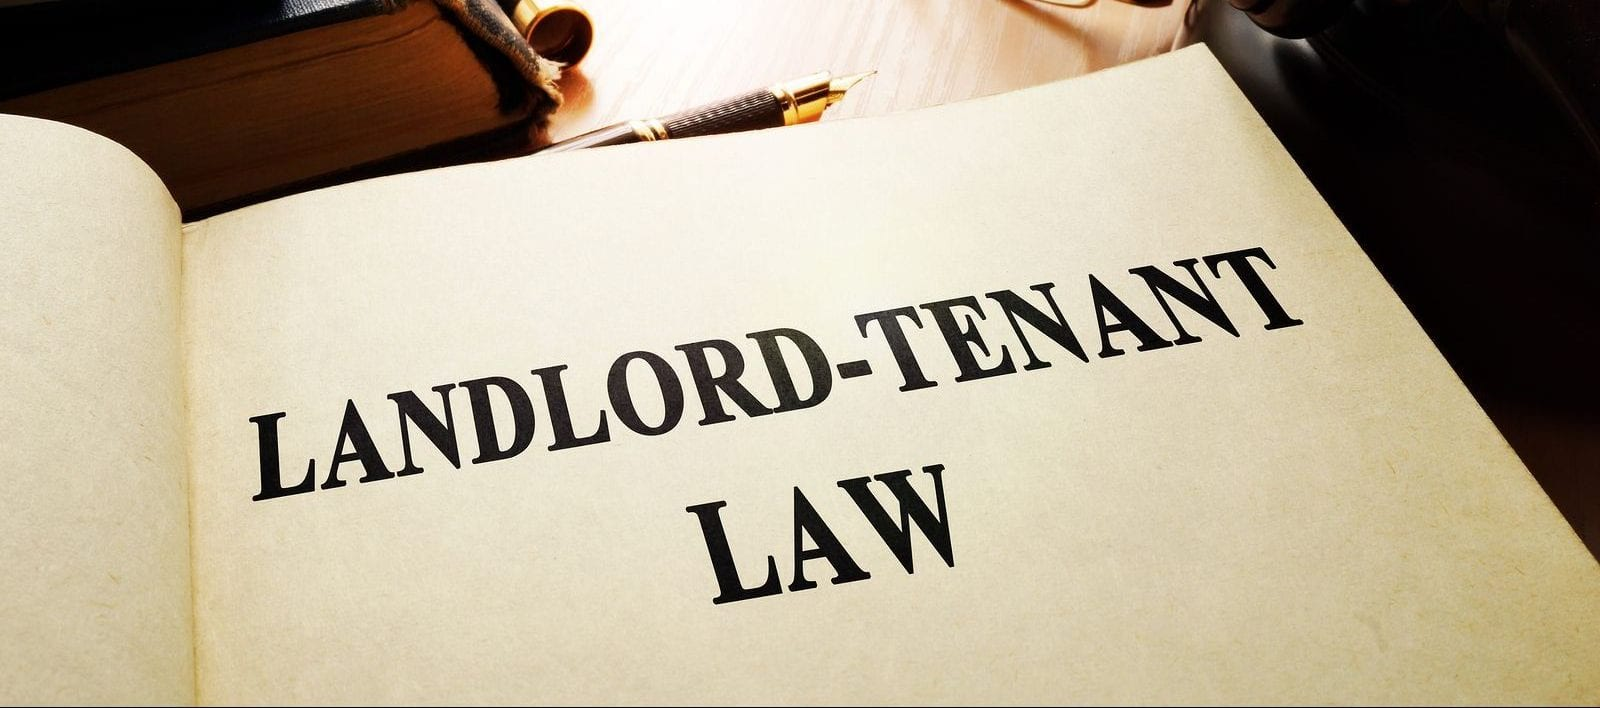 Landlord Tenant Law: Basics Every Real Estate Investor Should Know |  Investment Property Tips | Mashvisor Real Estate Blog